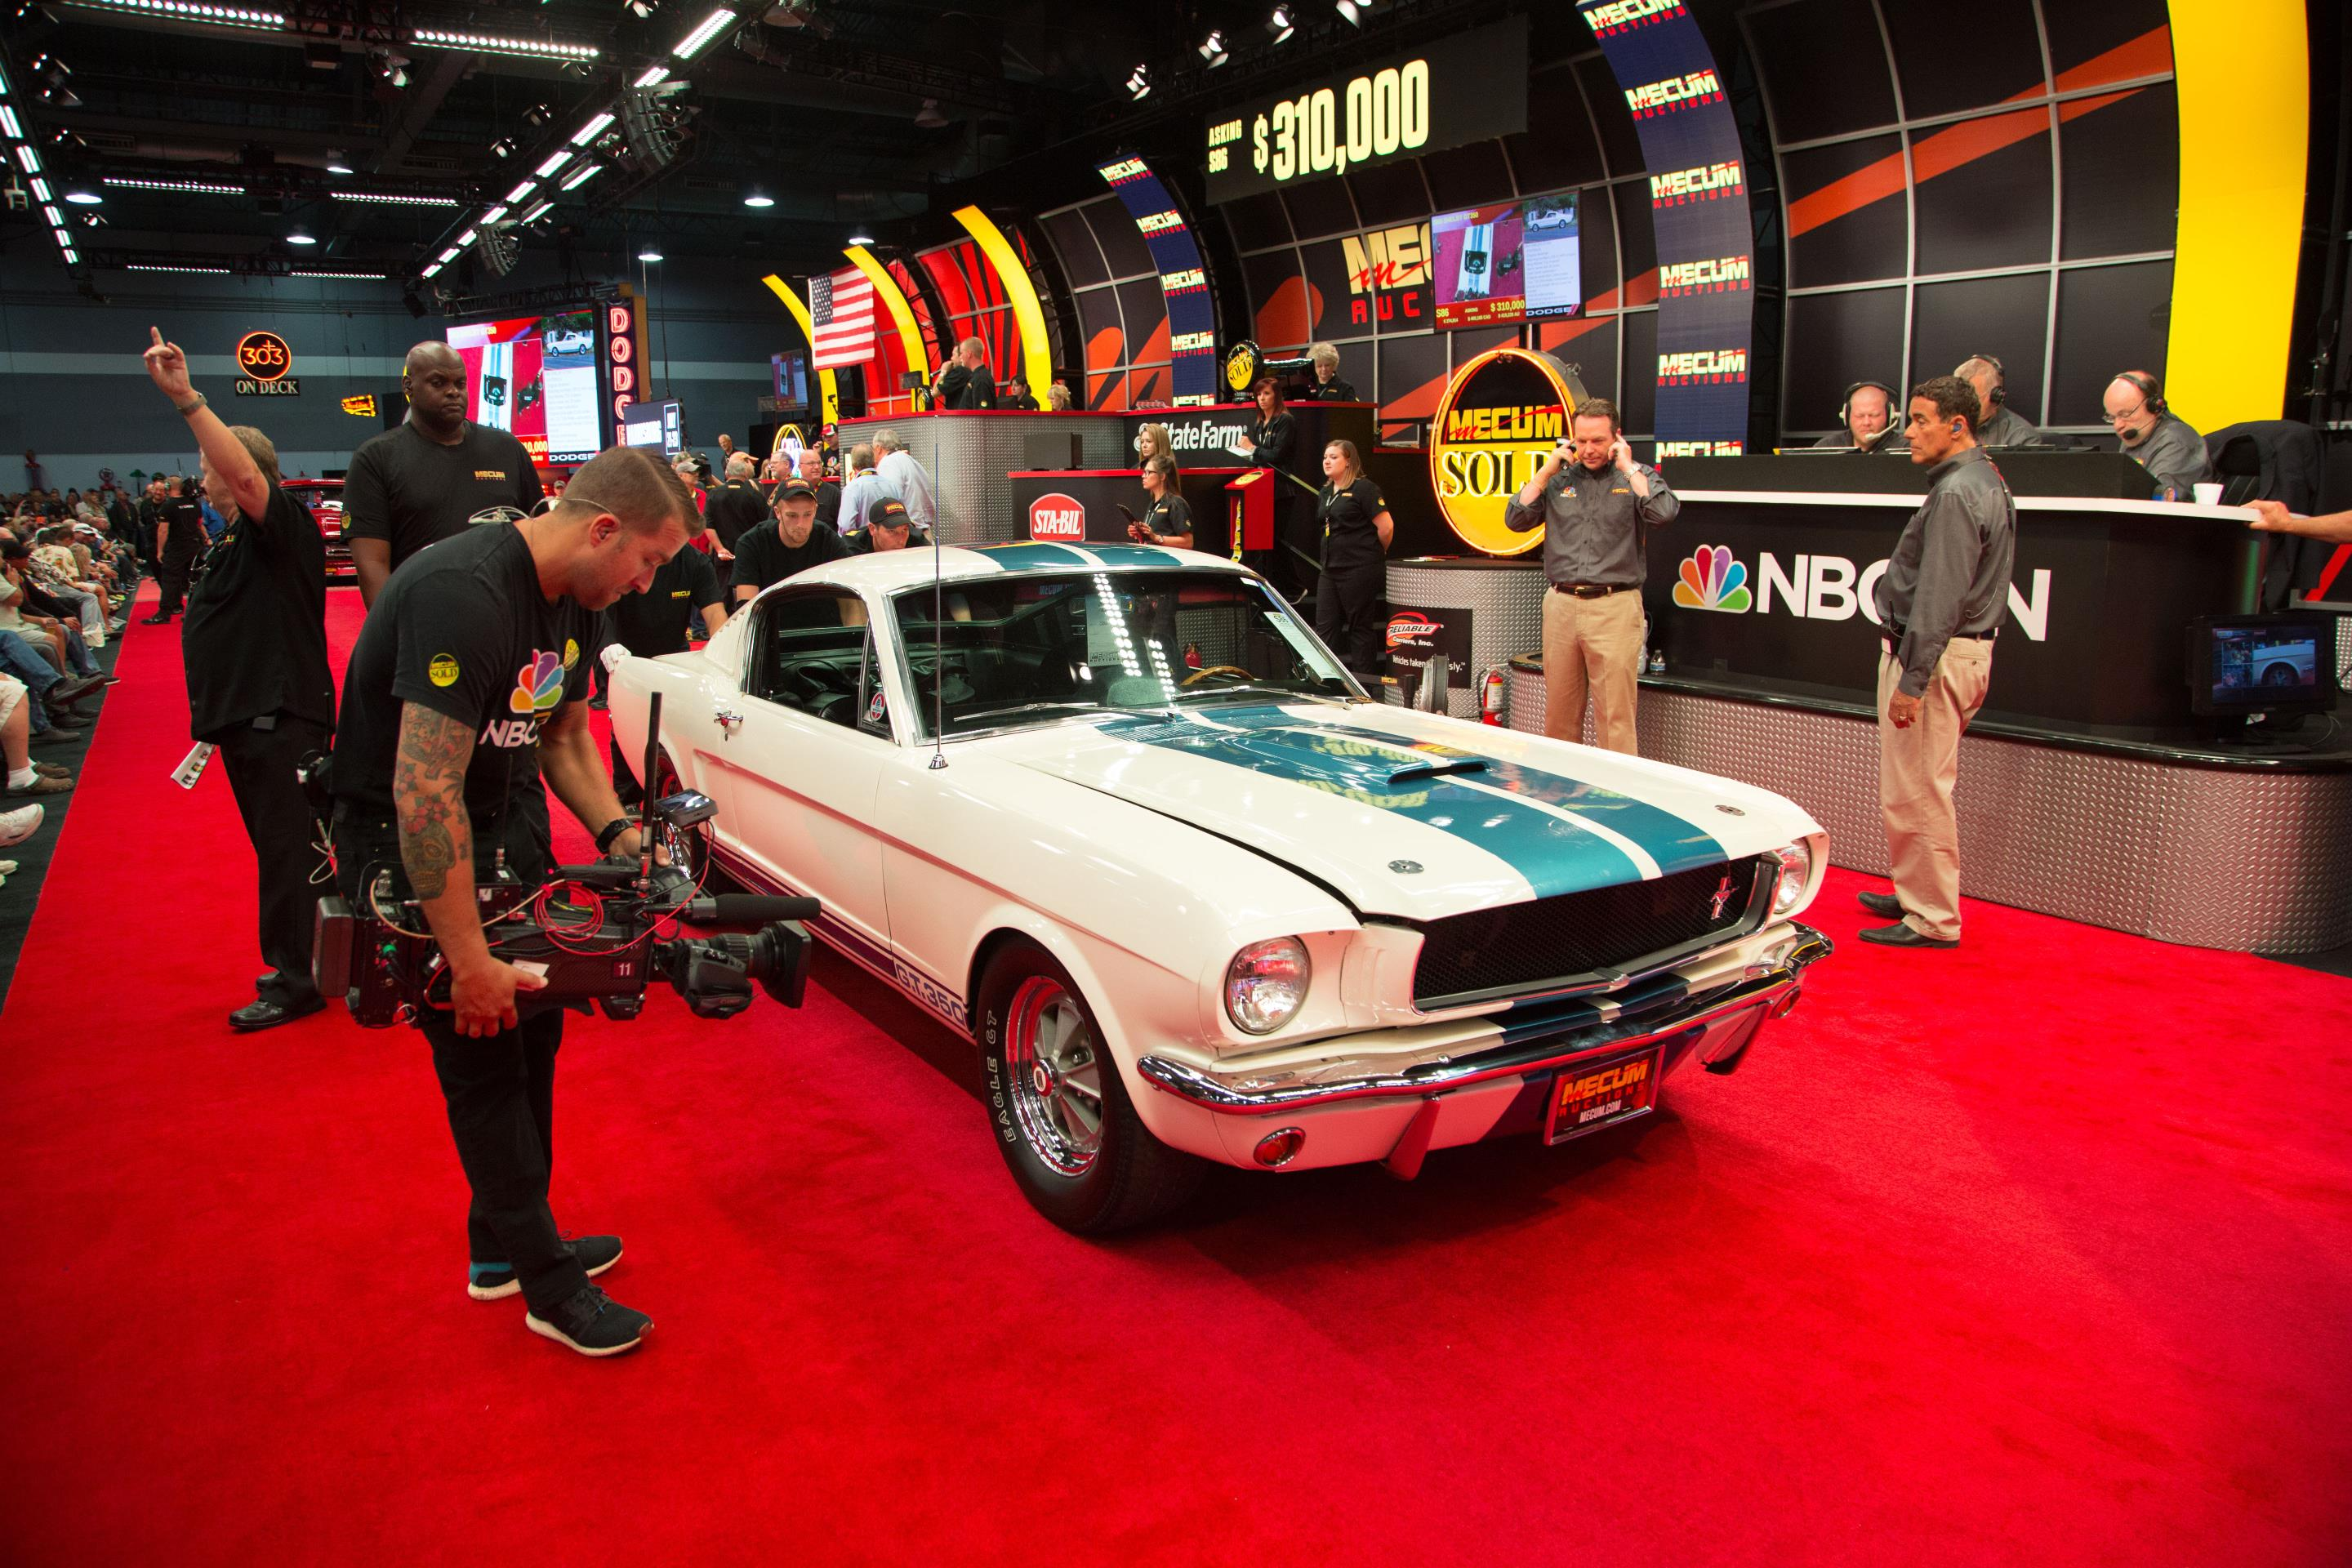 MECUM CAR AUCTION IN PORTLAND RESULTS - myAutoWorld.com